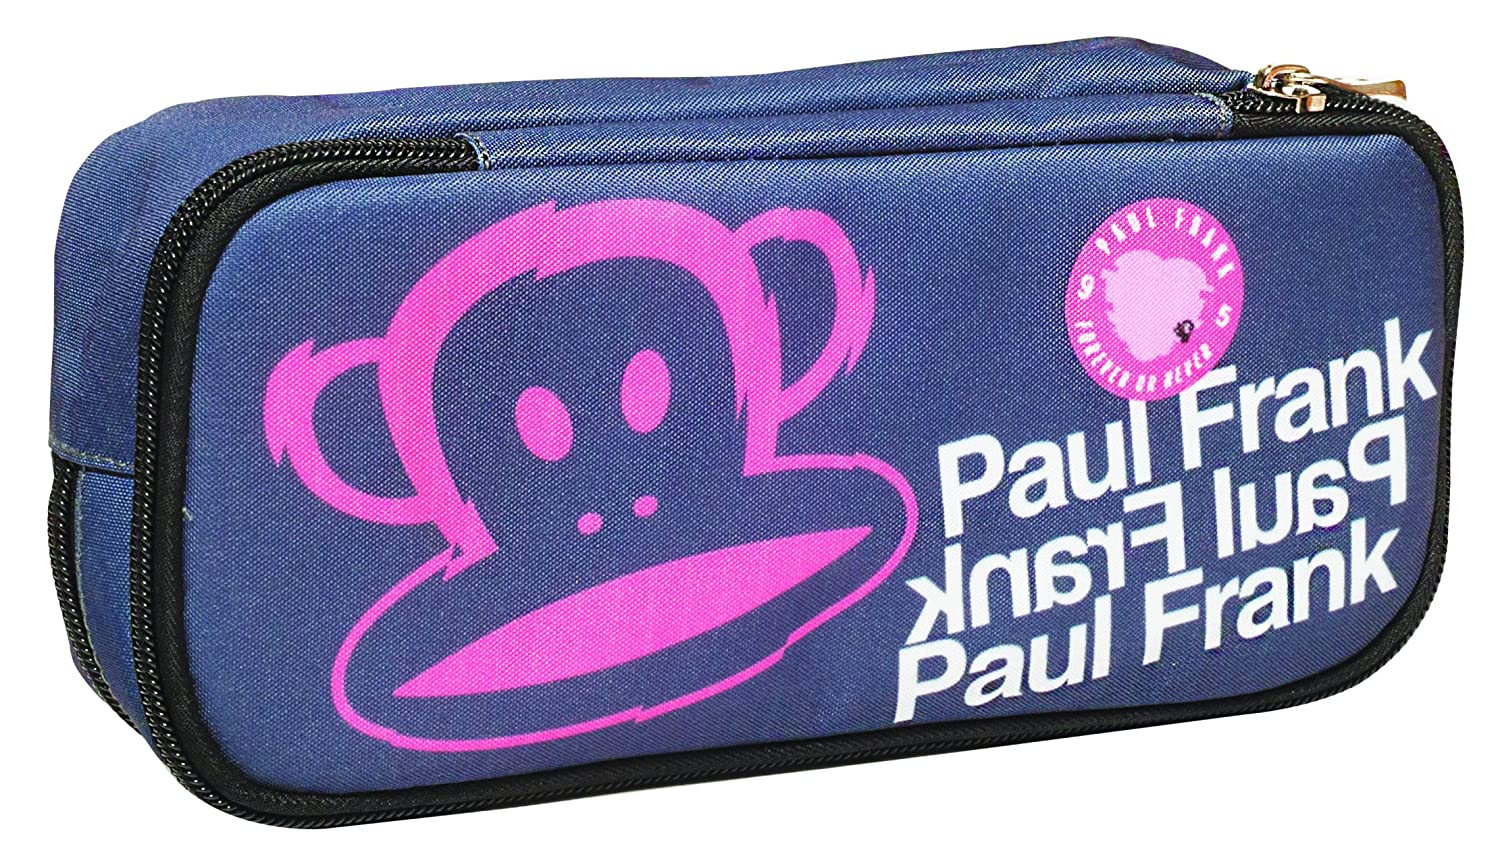 bmu Pencil Case ovalado Paul Frank Iconic: Amazon.es: Bebé